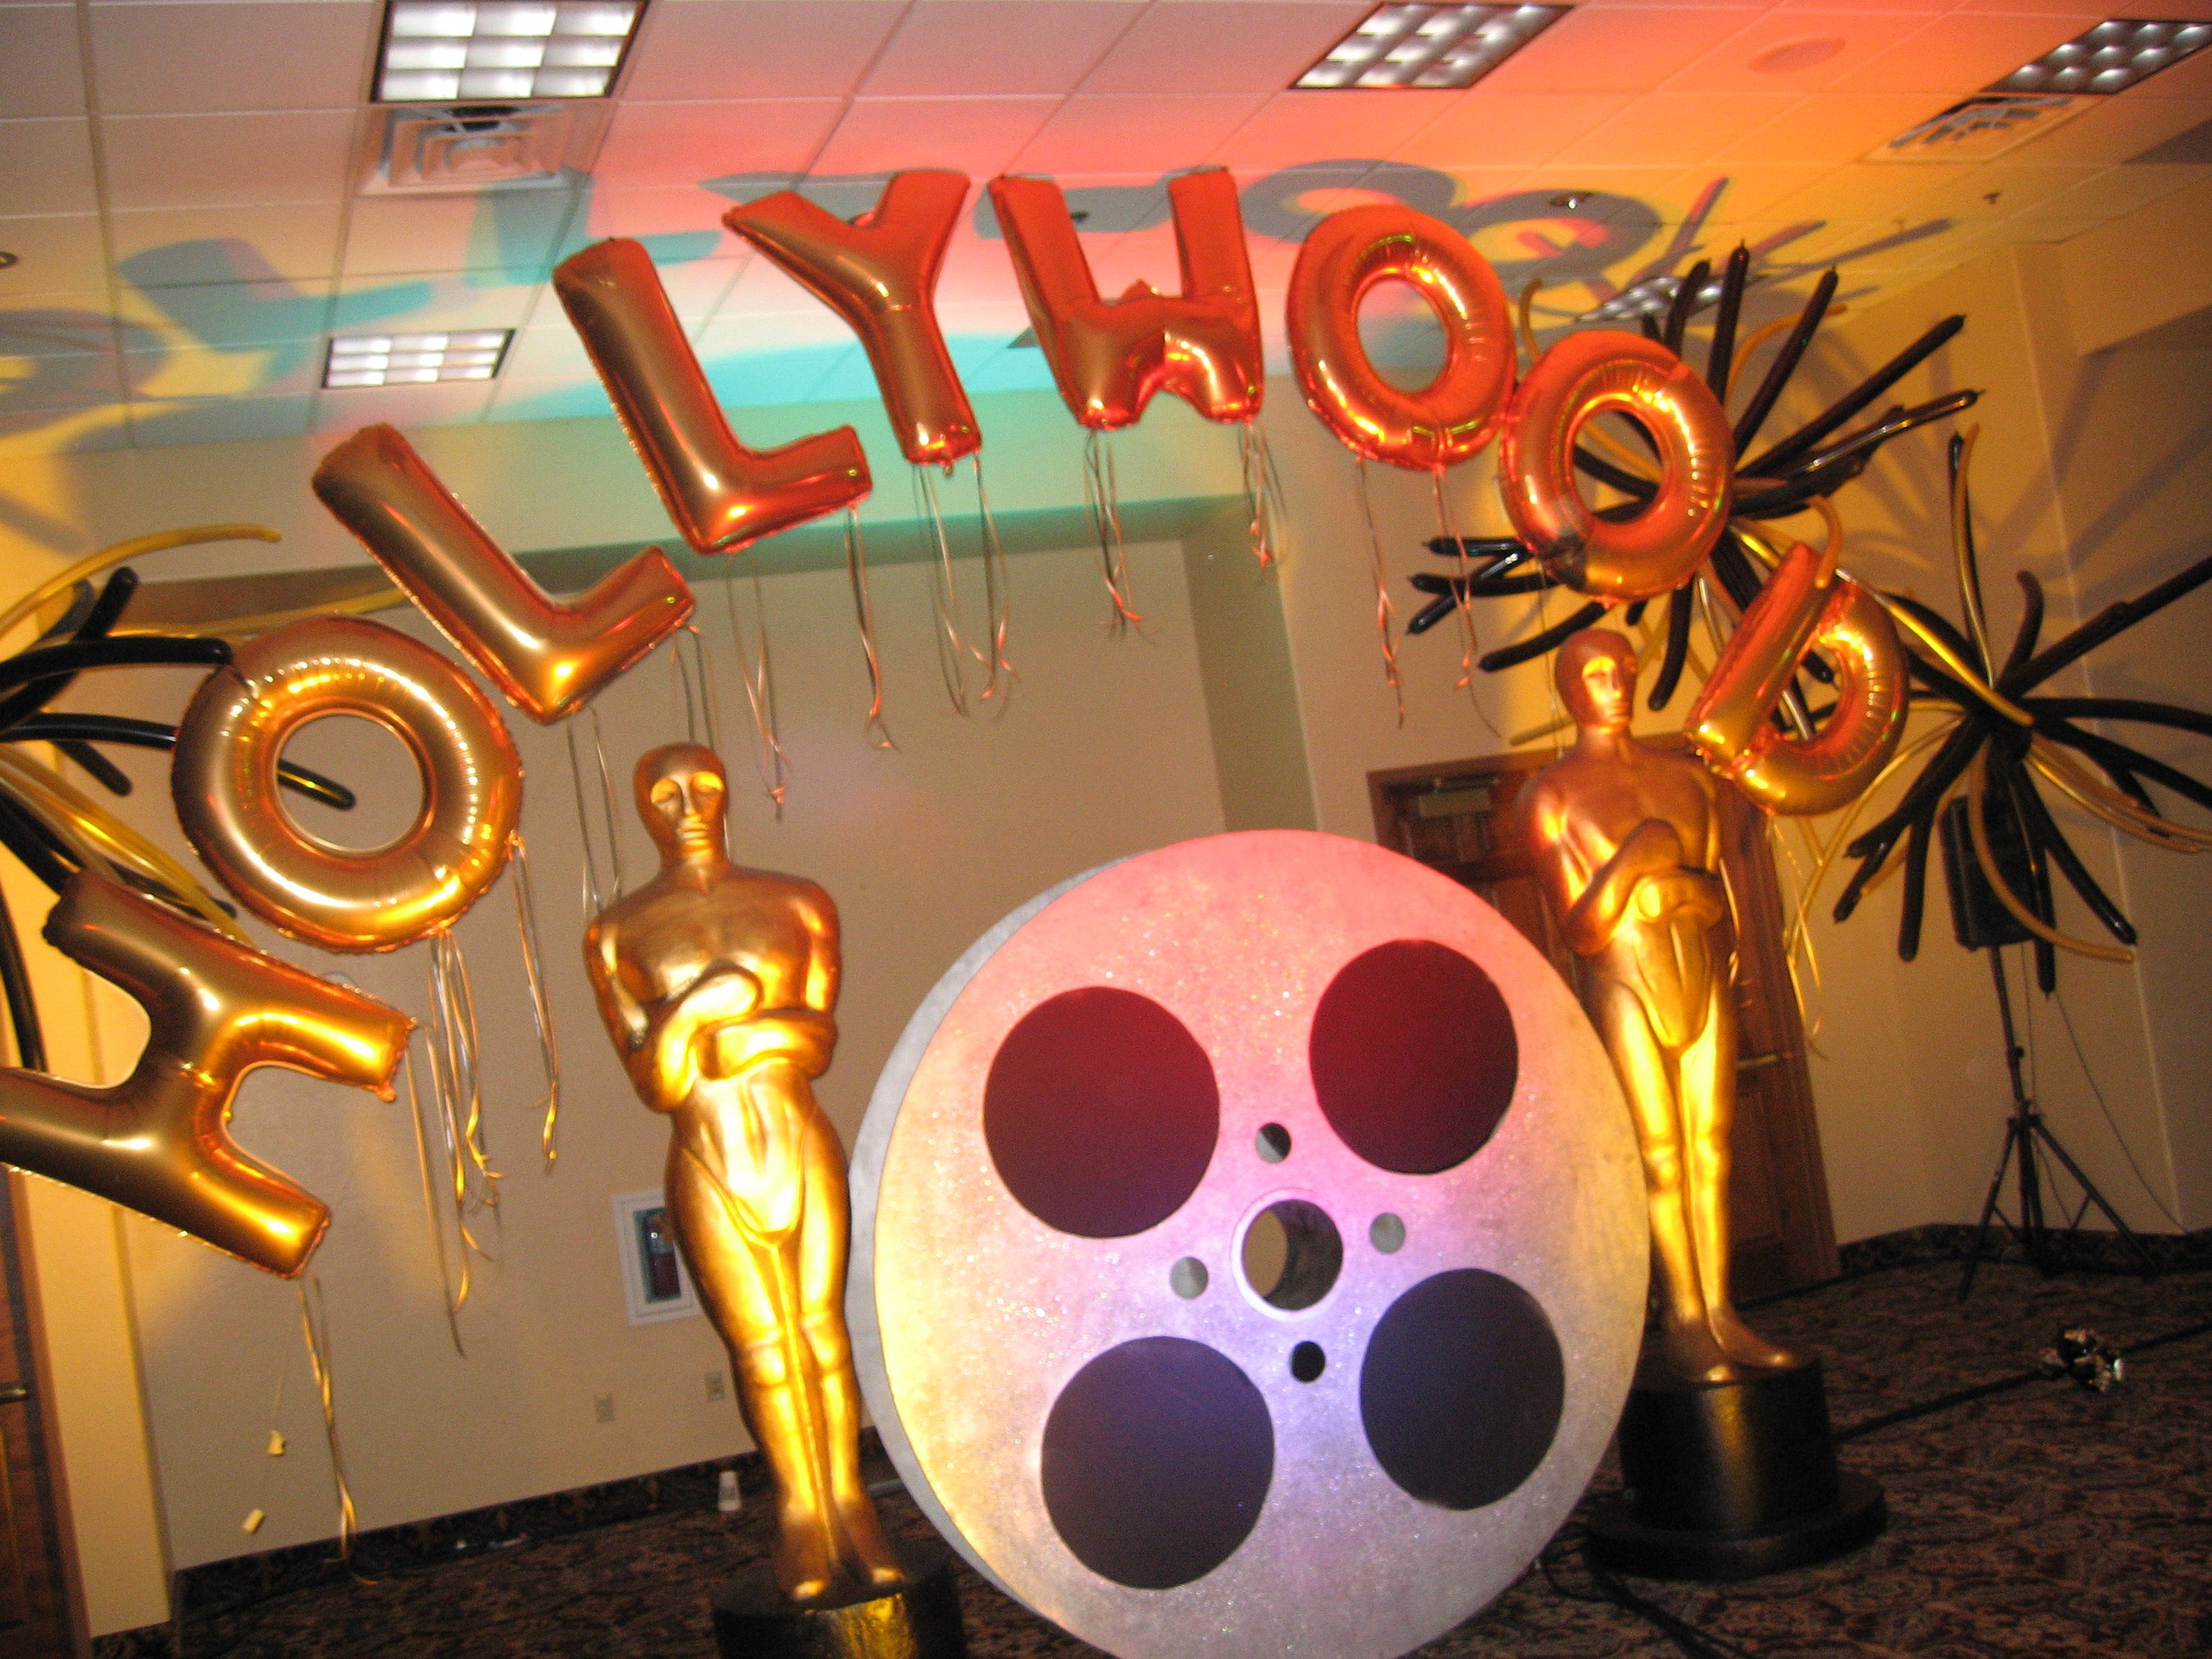 theme themed to modern decor design hollywood decorations home ideas cool party view